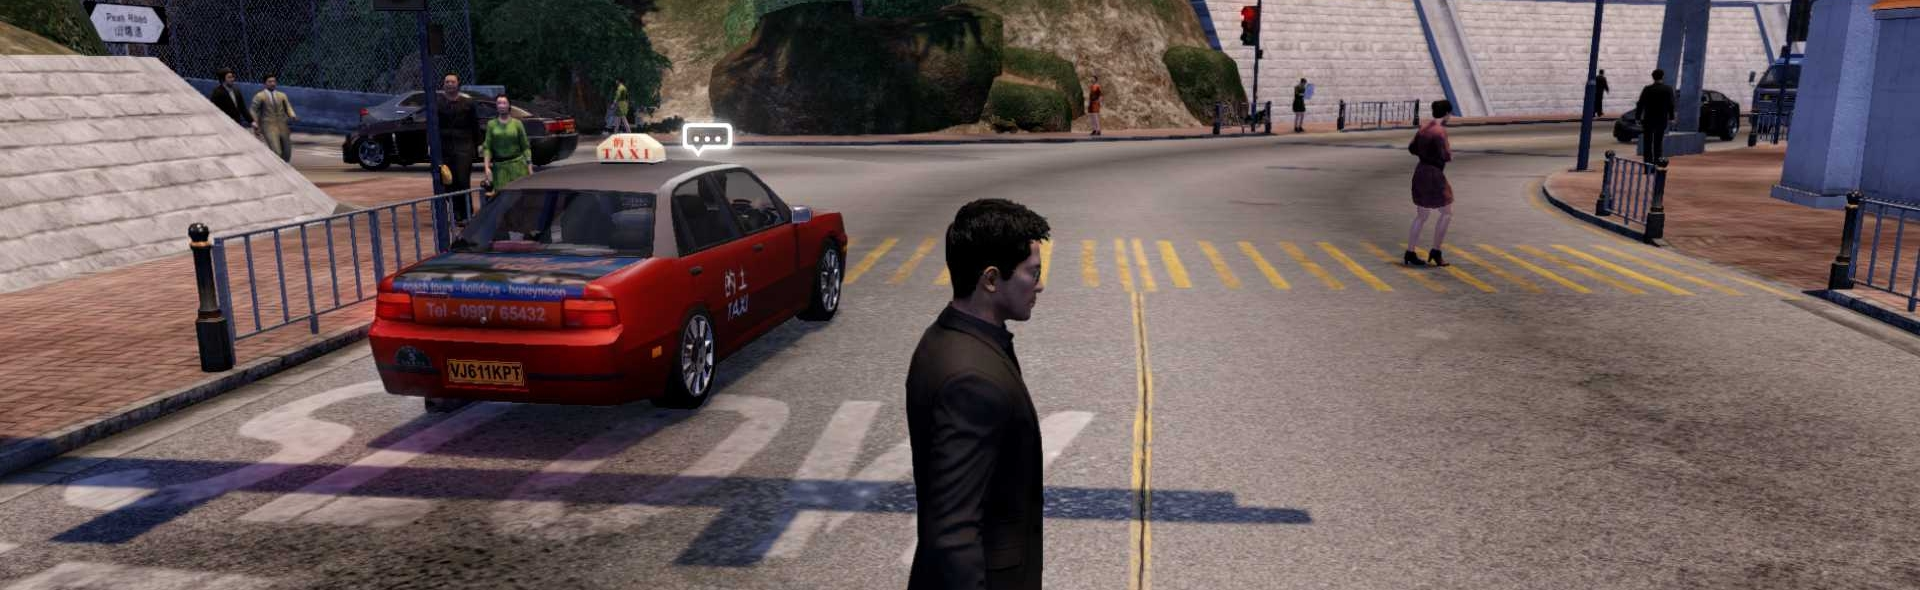 sleeping dogs download for pc